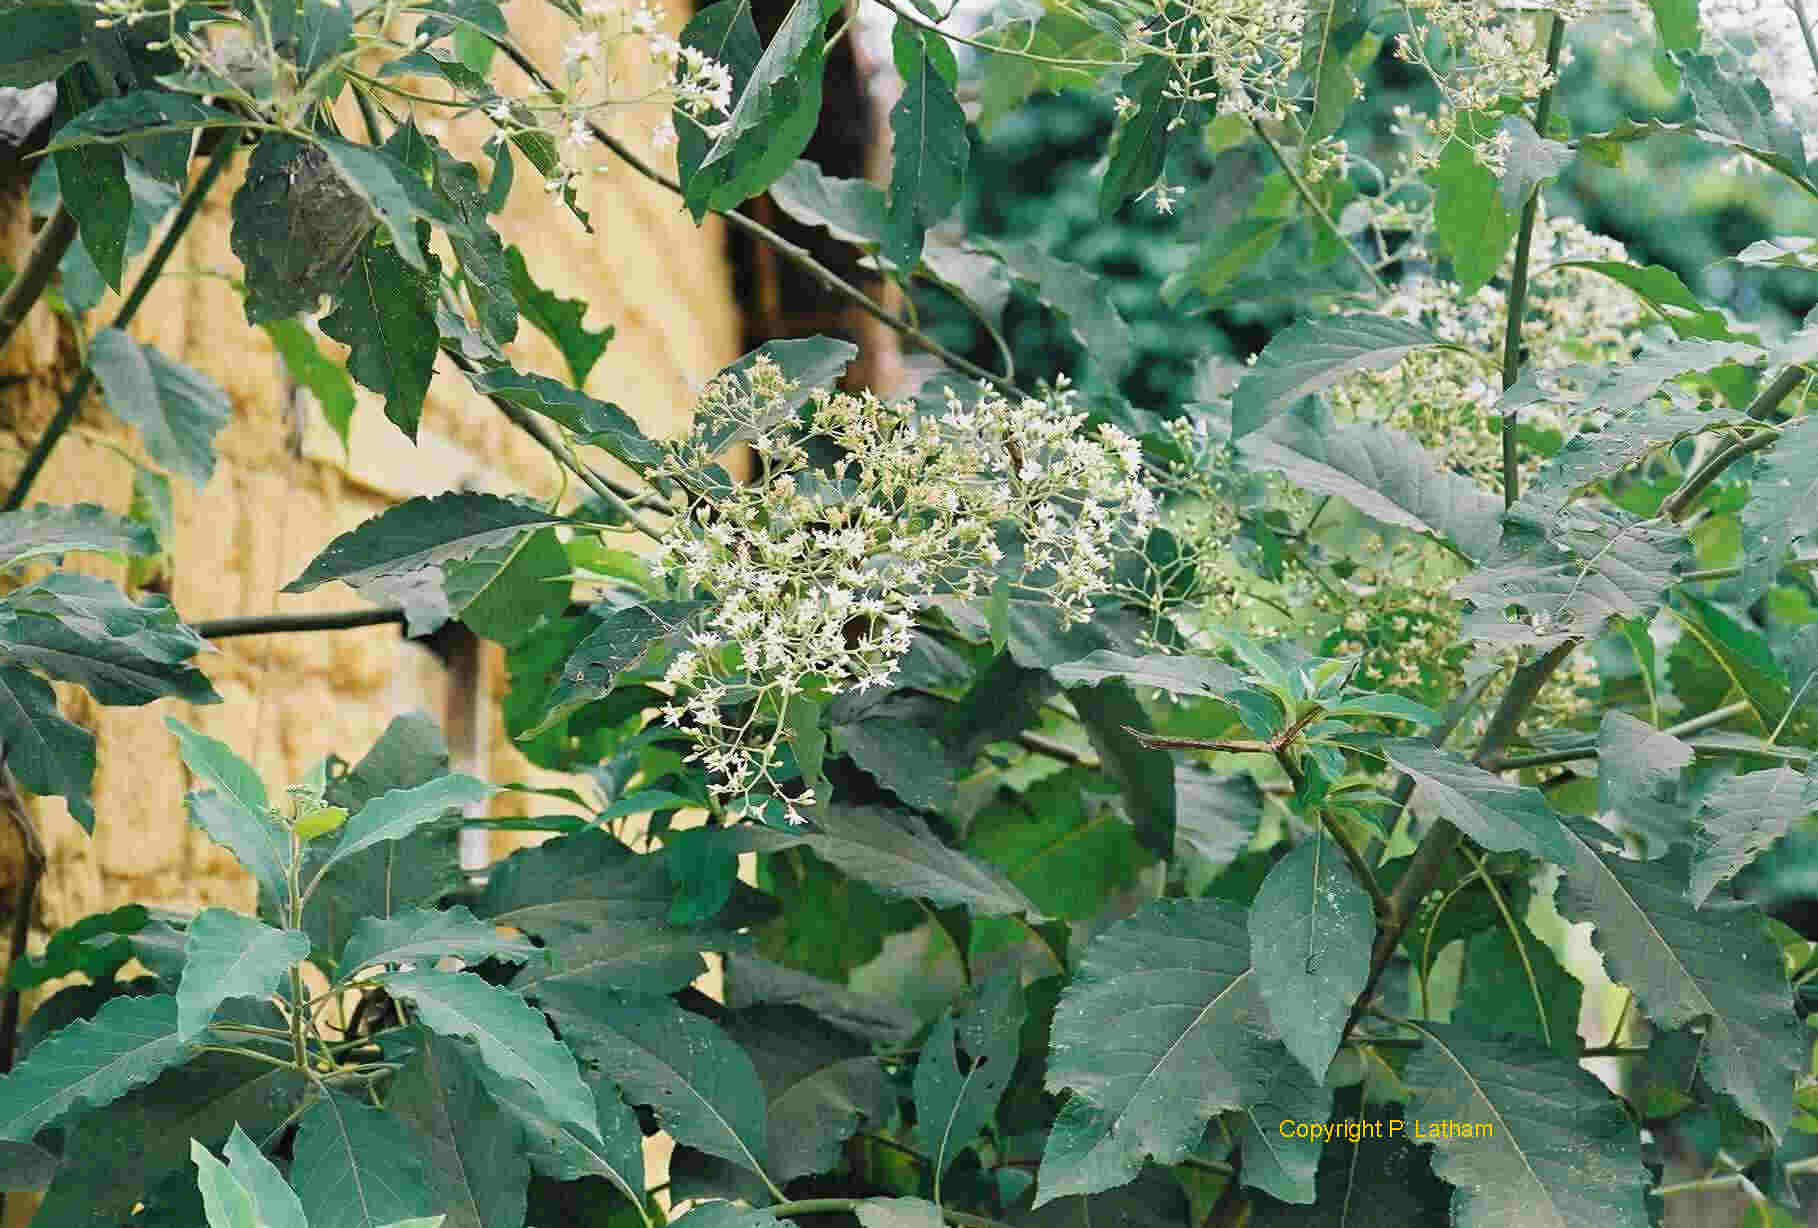 medicinal value of plants in pacific Herbs and flowers production a guide to medicinal and aromatic plants - guide containing plant/crop descriptors, herb varieties, sources of herb seeds and plants guide to ginseng production in the pacific northwest - ginseng production guide.